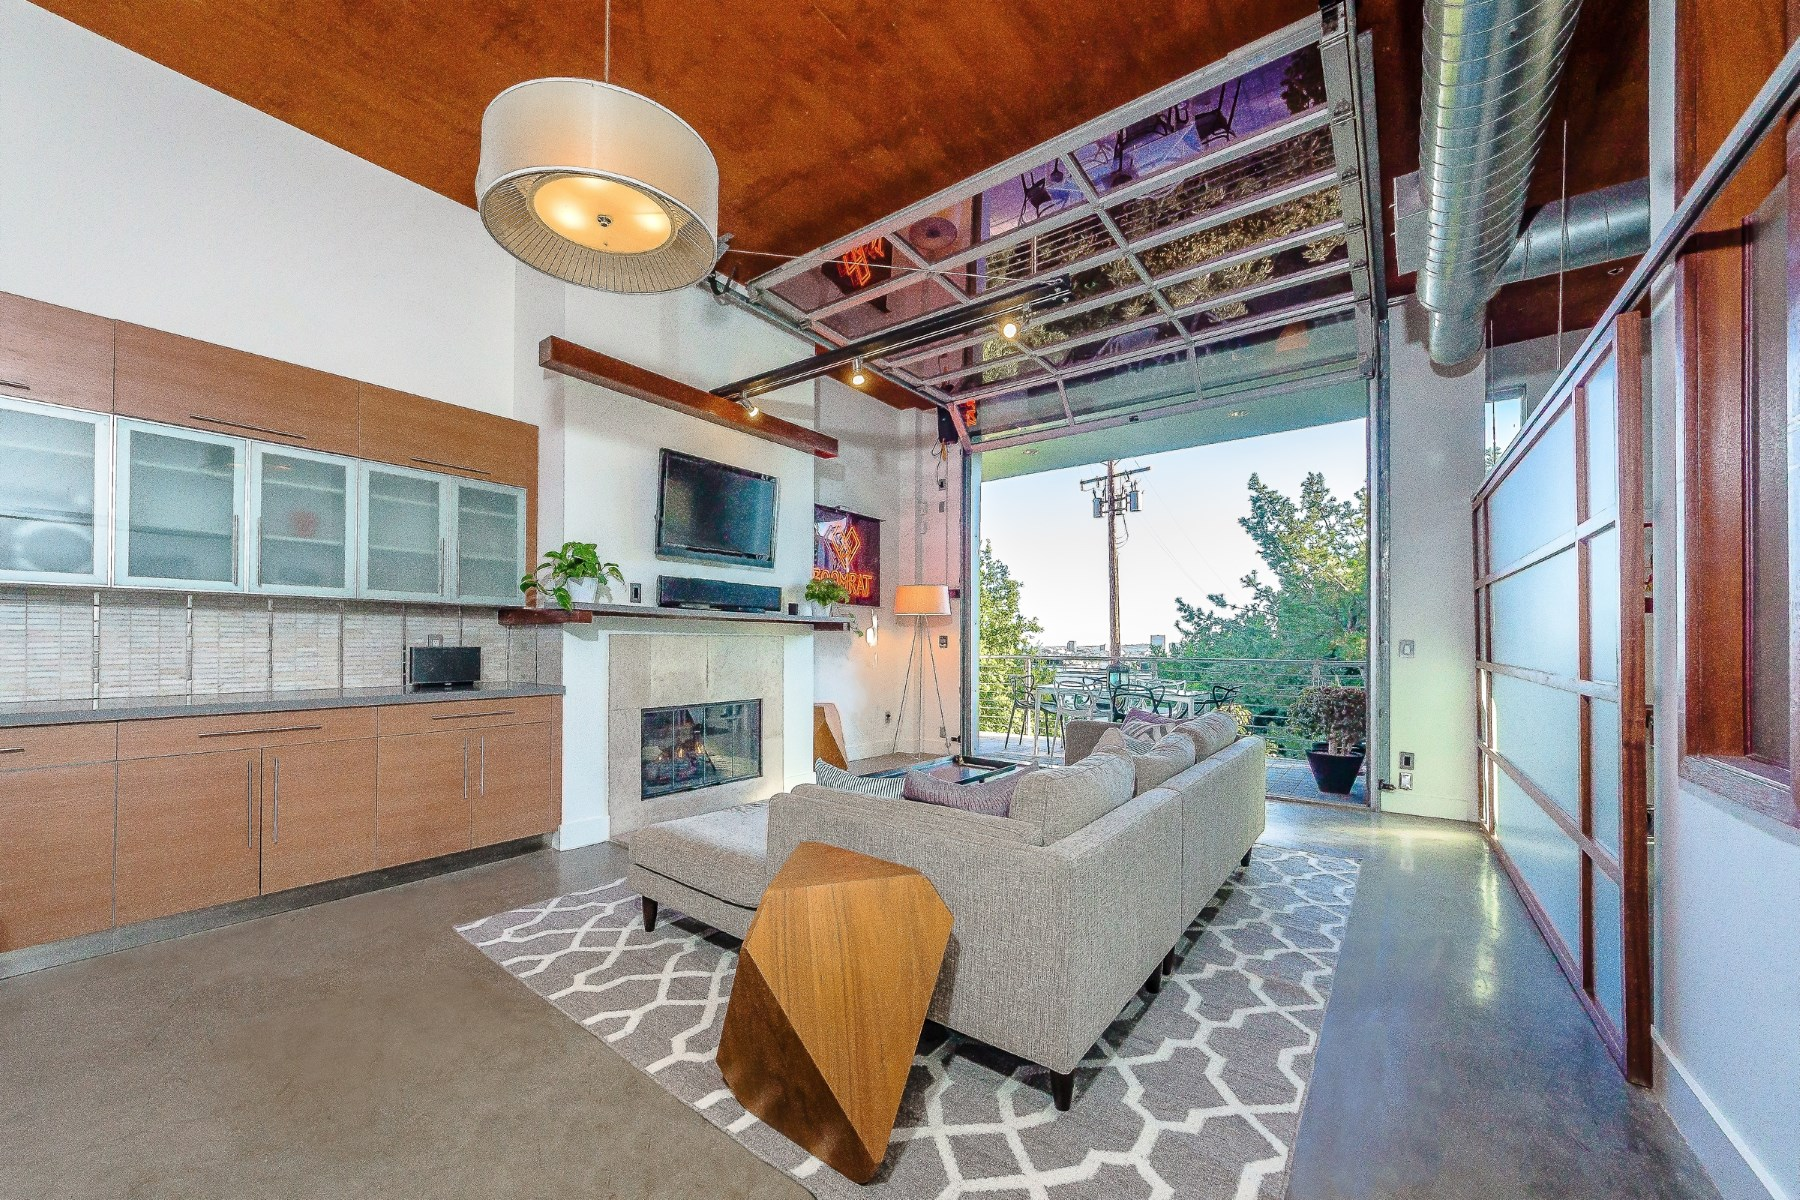 Condominium for Sale at Architectural Loft in West Hollywood 1152 North La Cienega Boulevard Unit 203 West Hollywood, West Hollywood, California 90069 United States